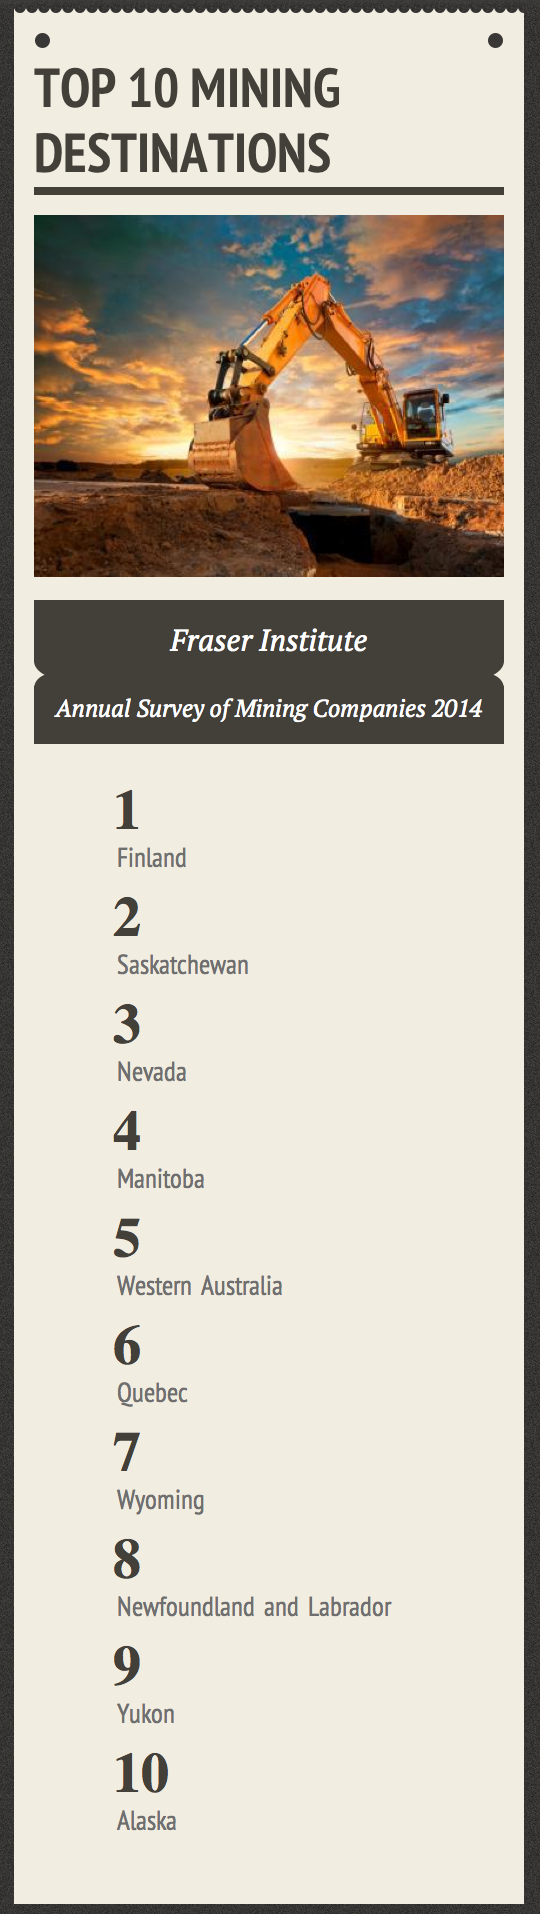 Canada's Saskatchewan second only to Finland as world's top mining destination